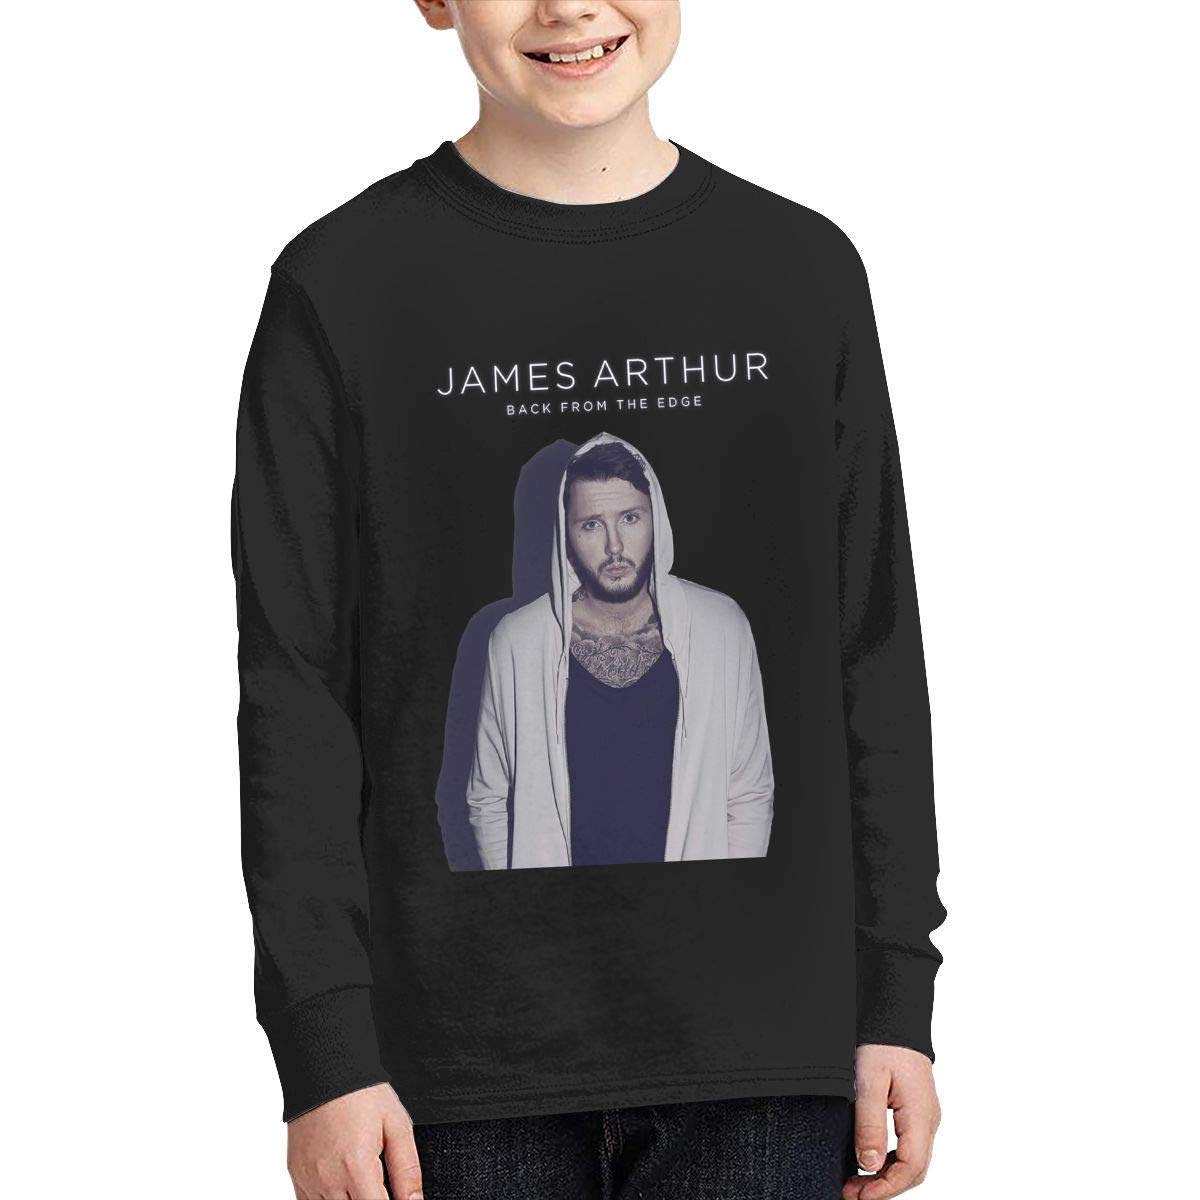 HangHisi James Arthur Boys /& Girls O Neck Regular Style Tee Long Sleeve T Shirt Leisure